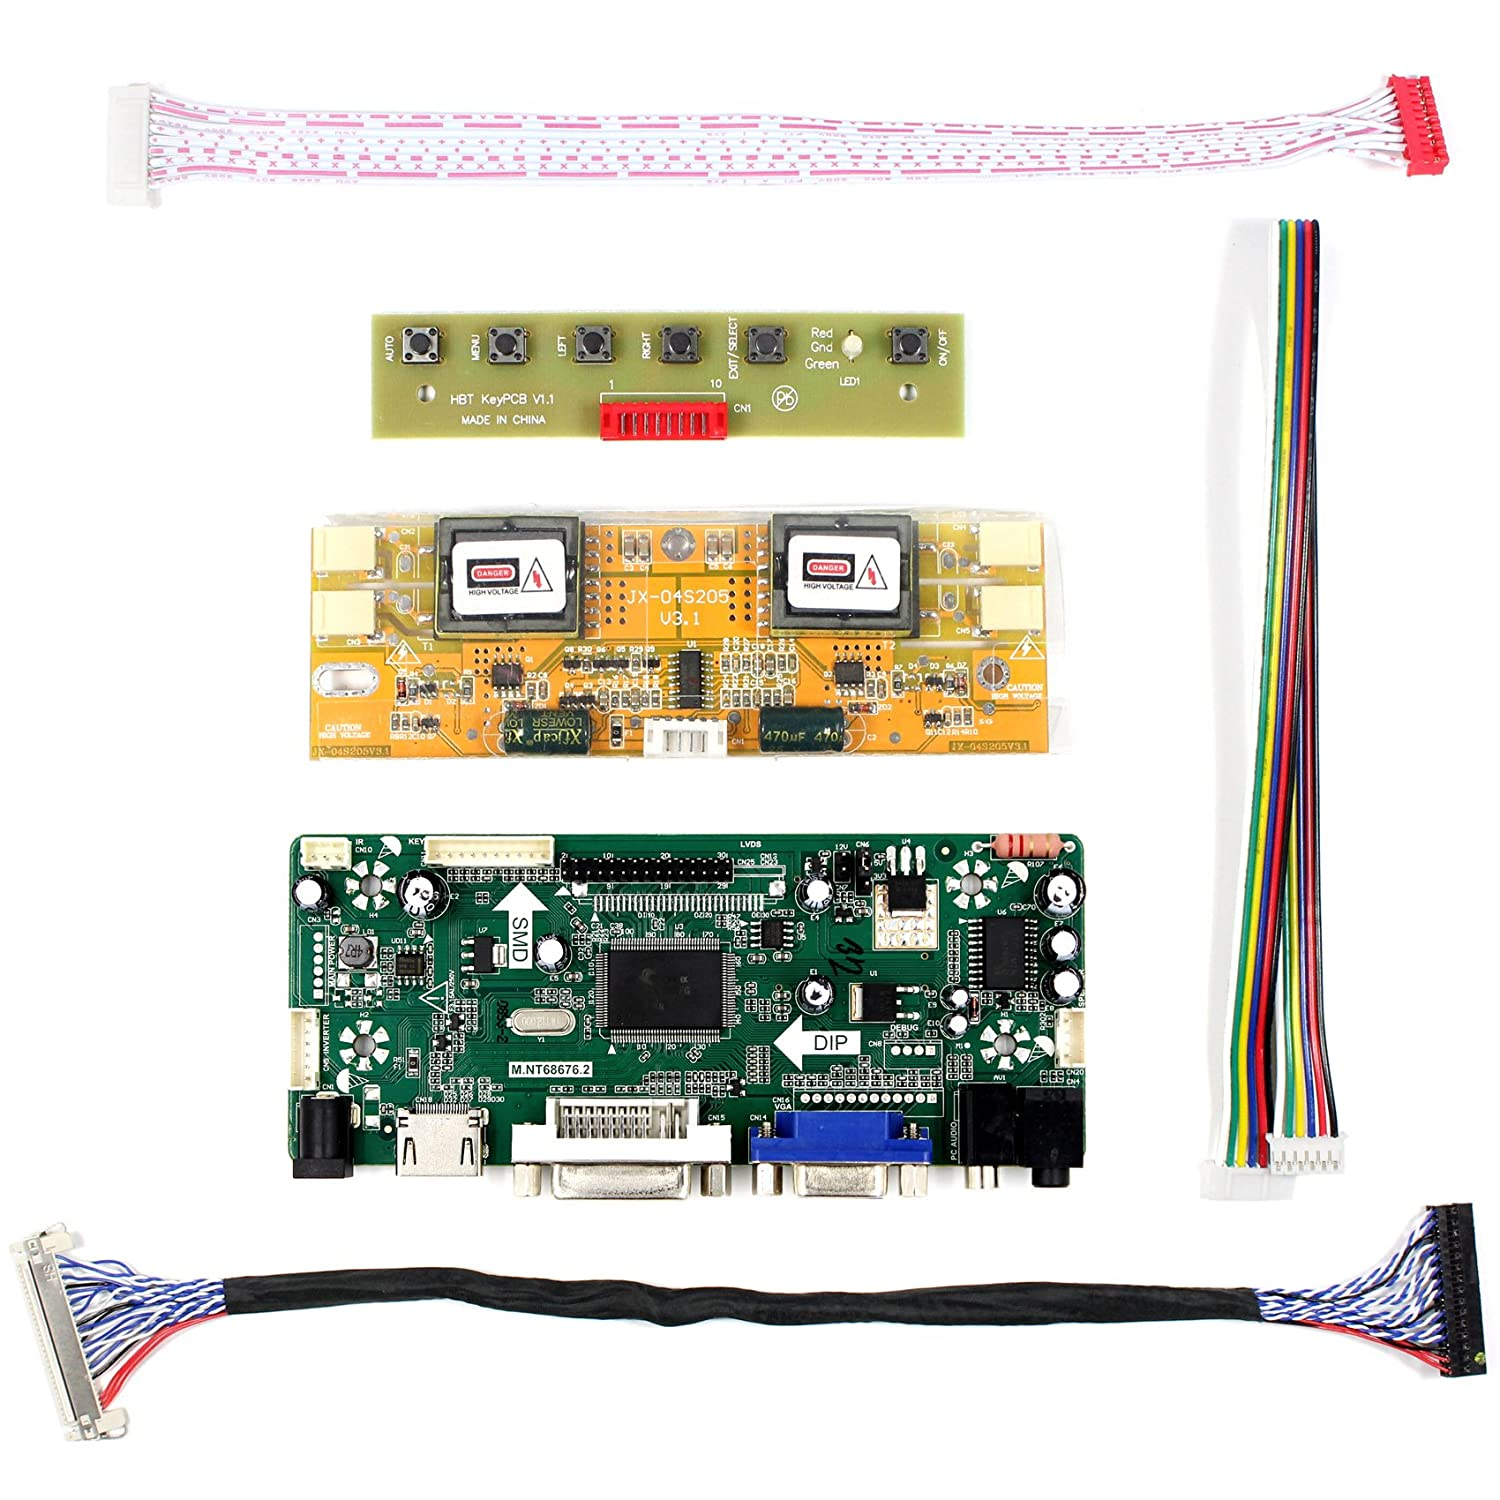 Vsdisplay Hdmi Vga Dvi Audio Lcd Driver Board For 17 19 Promotional Led Circuit Buy M170eg01 Lm190e02 1280x1024 4ccfl 30pin Panel Computers Accessories